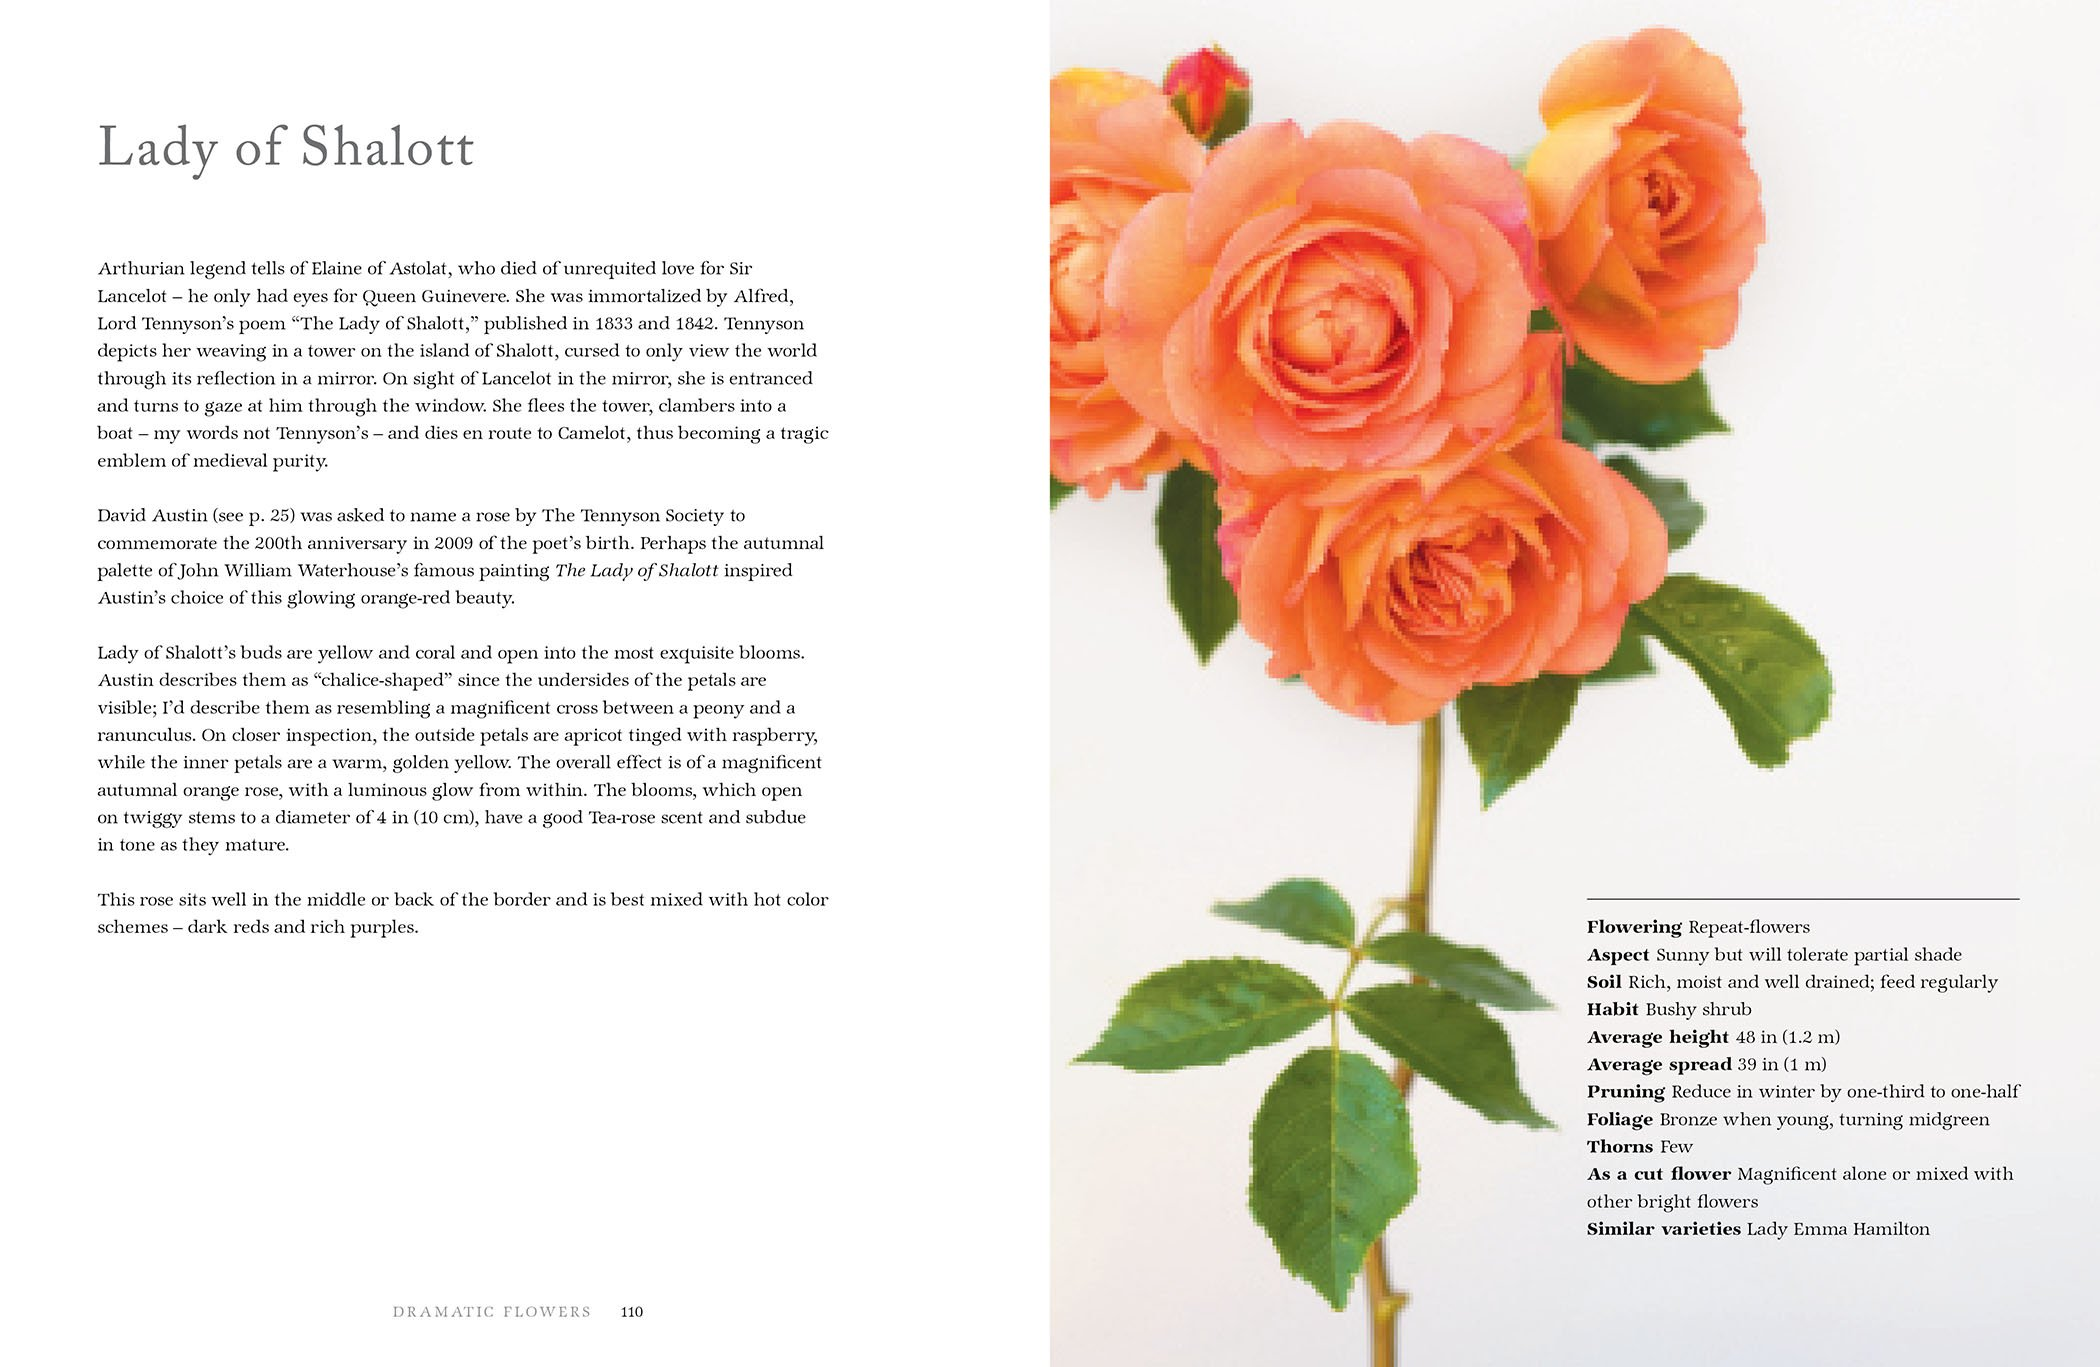 Vintage roses beautiful varieties for home and garden jane vintage roses beautiful varieties for home and garden jane eastoe georgianna lane 9781423646716 amazon books fandeluxe Document